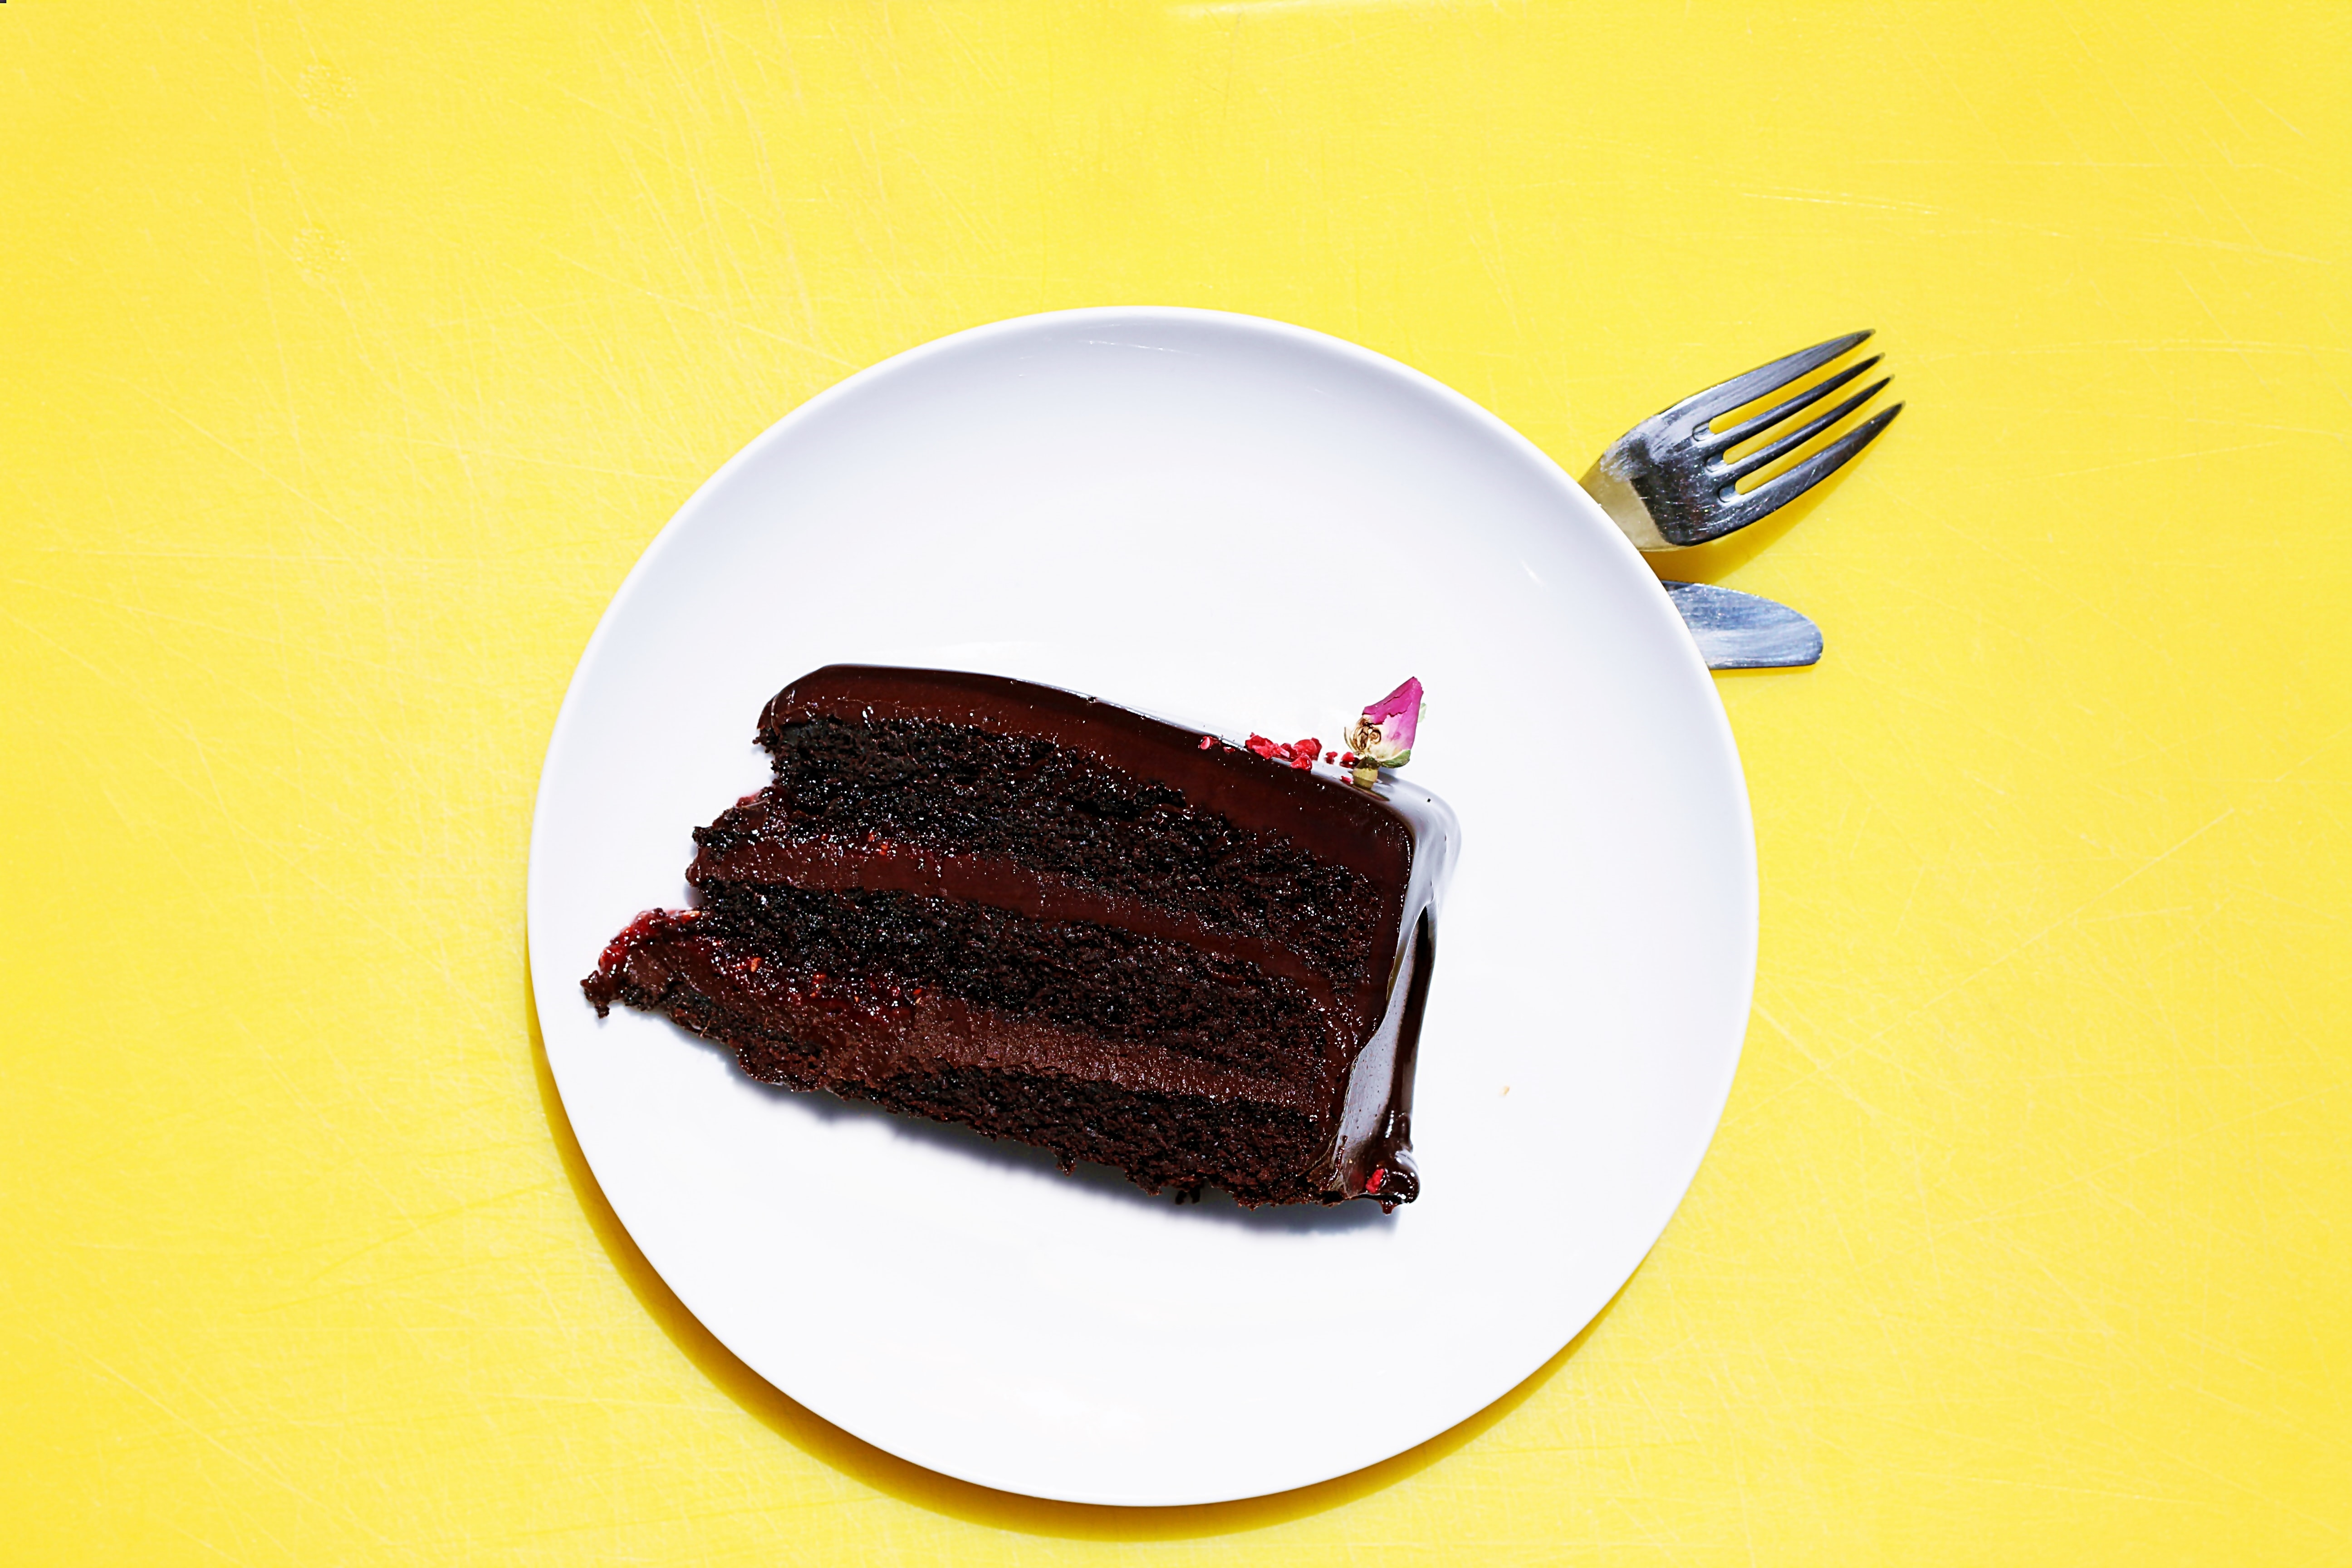 Plate of chocolate cake on a yellow background